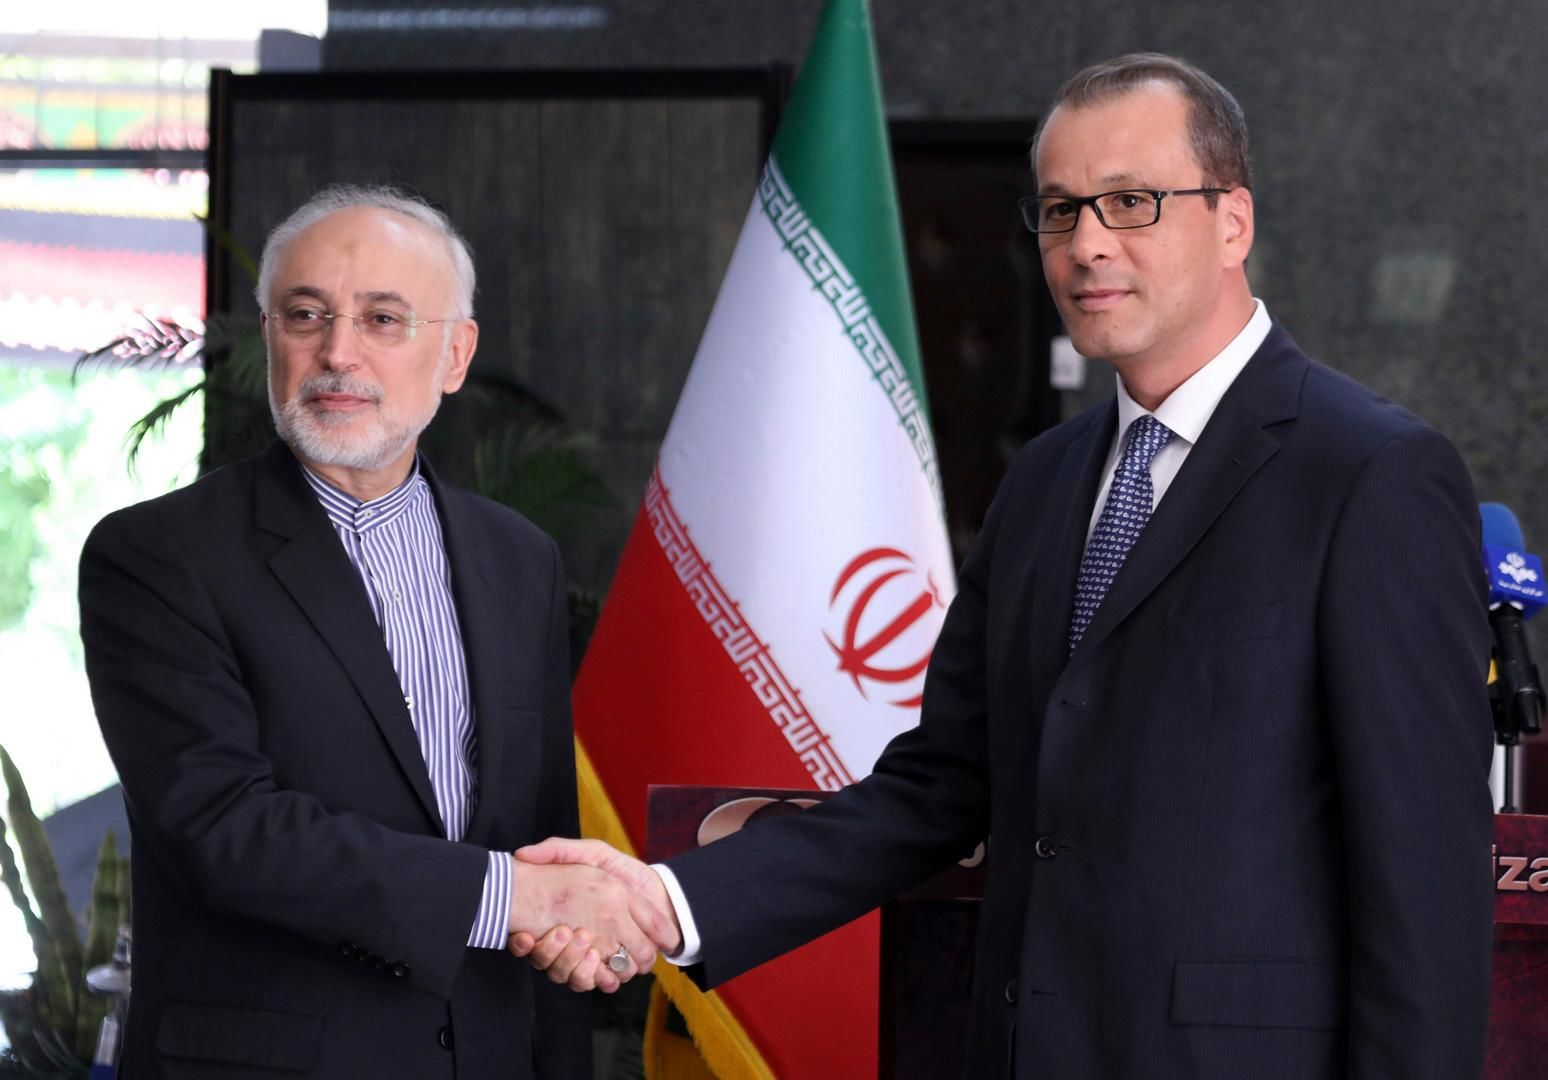 In this photo released by the Atomic Energy Organization of Iran, the head of the organization Ali Akbar Salehi, left, shakes hands with Acting Director-General of the International Atomic Energy Agency, IAEA, Cornel Feruta during their meeting in Tehran, Iran, Sunday, Sept. 8, 2019. (Atomic Energy Organization of Iran via AP)